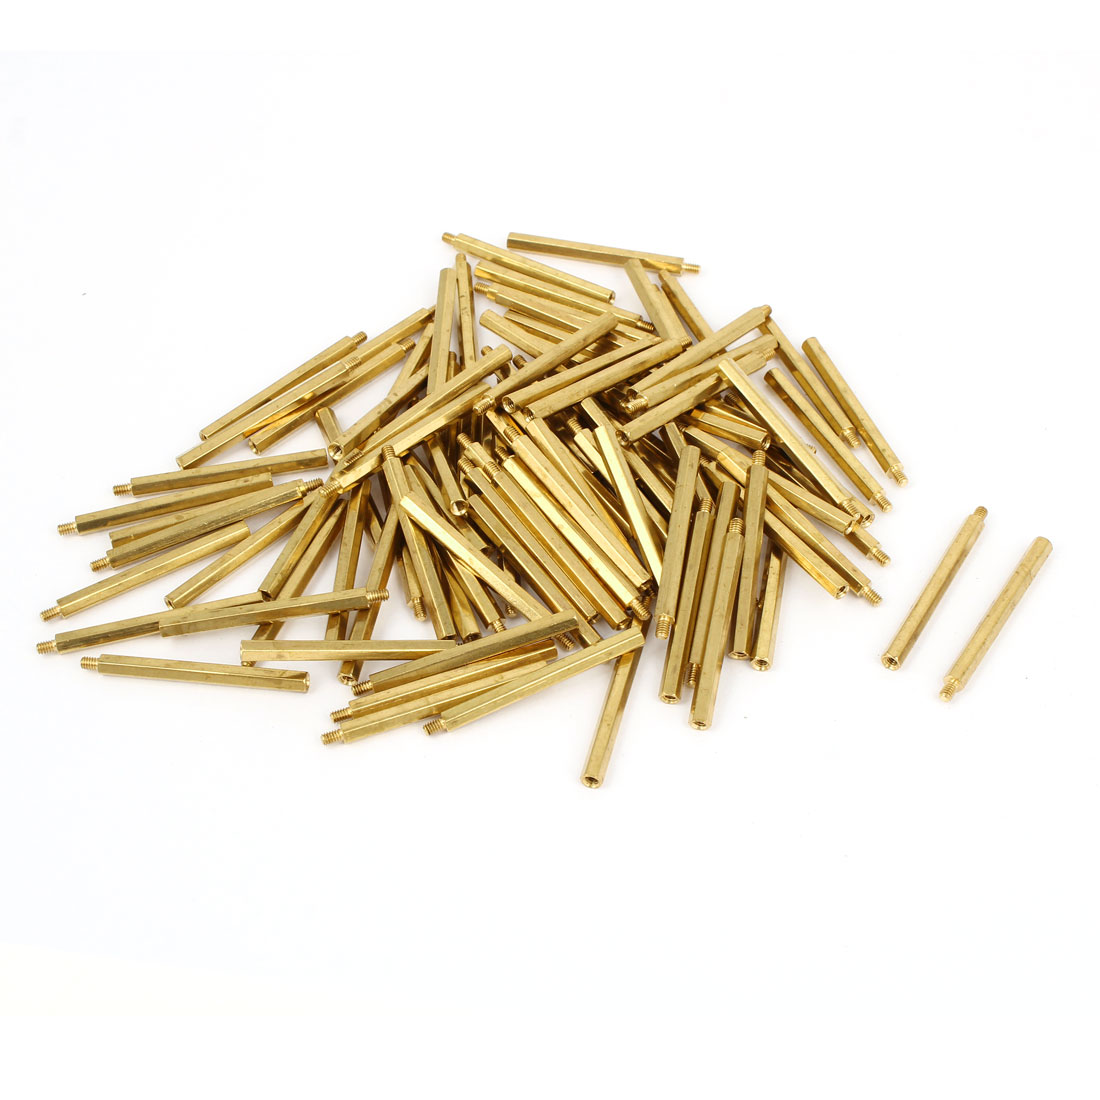 100 Pcs M2x31 Brass Column Male Hexagon Stand-off Spacers 3mm Thread Length